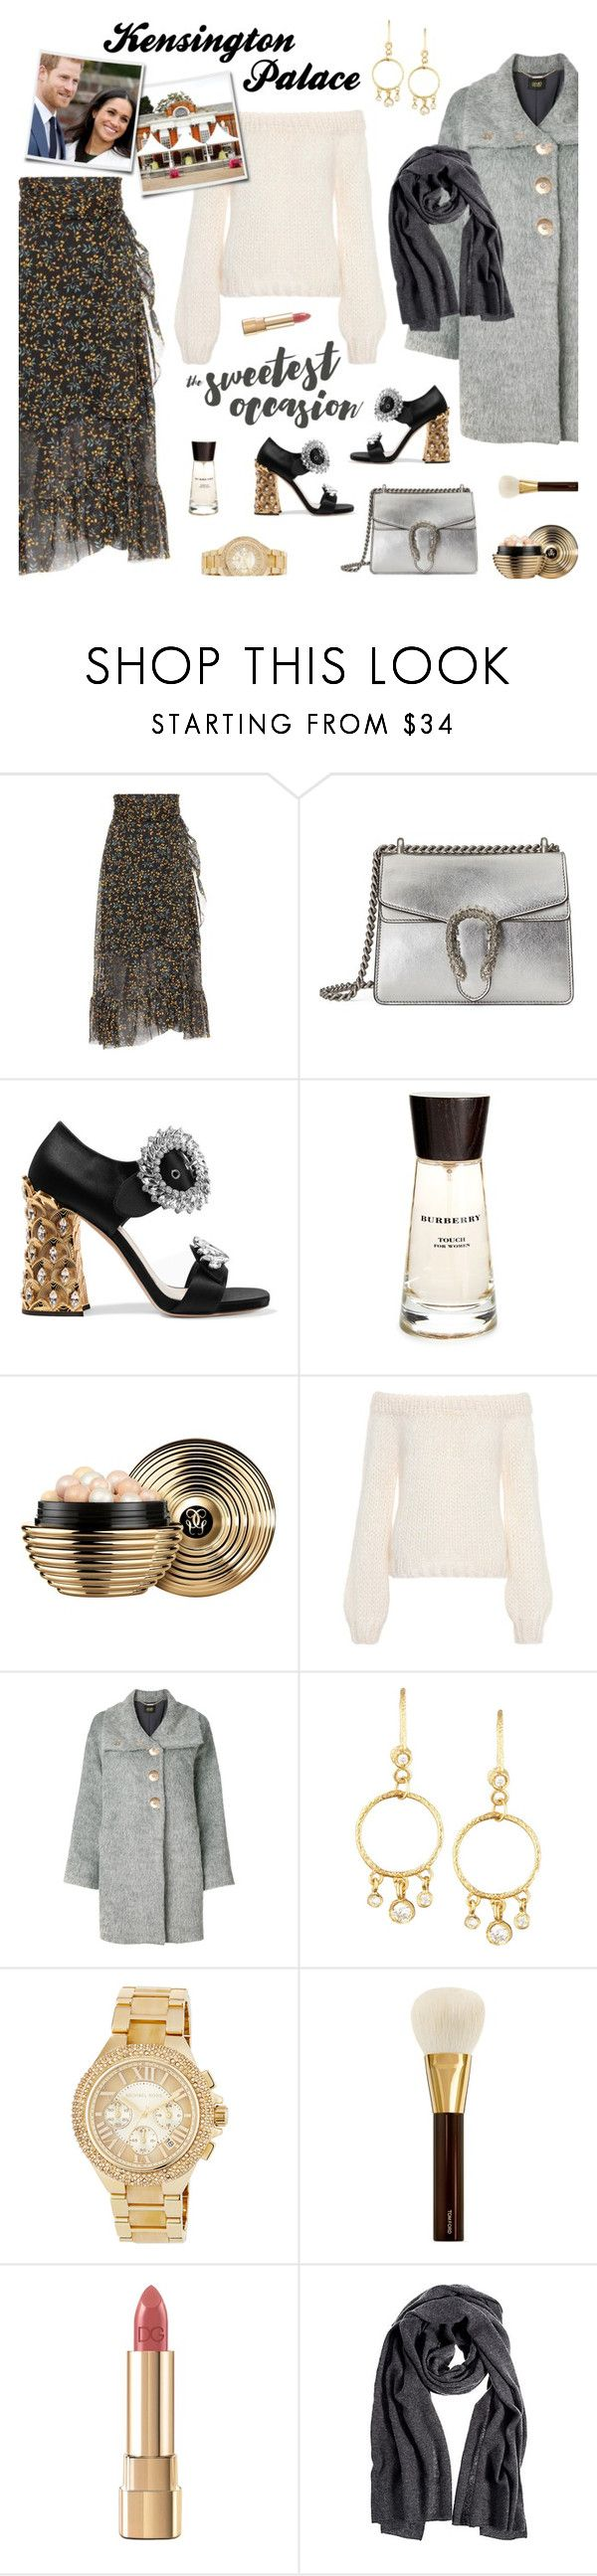 """""""Kensington Palace Travel Outfit"""" by sproetje ❤ liked on Polyvore featuring Ganni, Gucci, Miu Miu, Burberry, Guerlain, LIU•JO, Dominique Cohen, MICHAEL Michael Kors, Tom Ford and Dolce&Gabbana"""